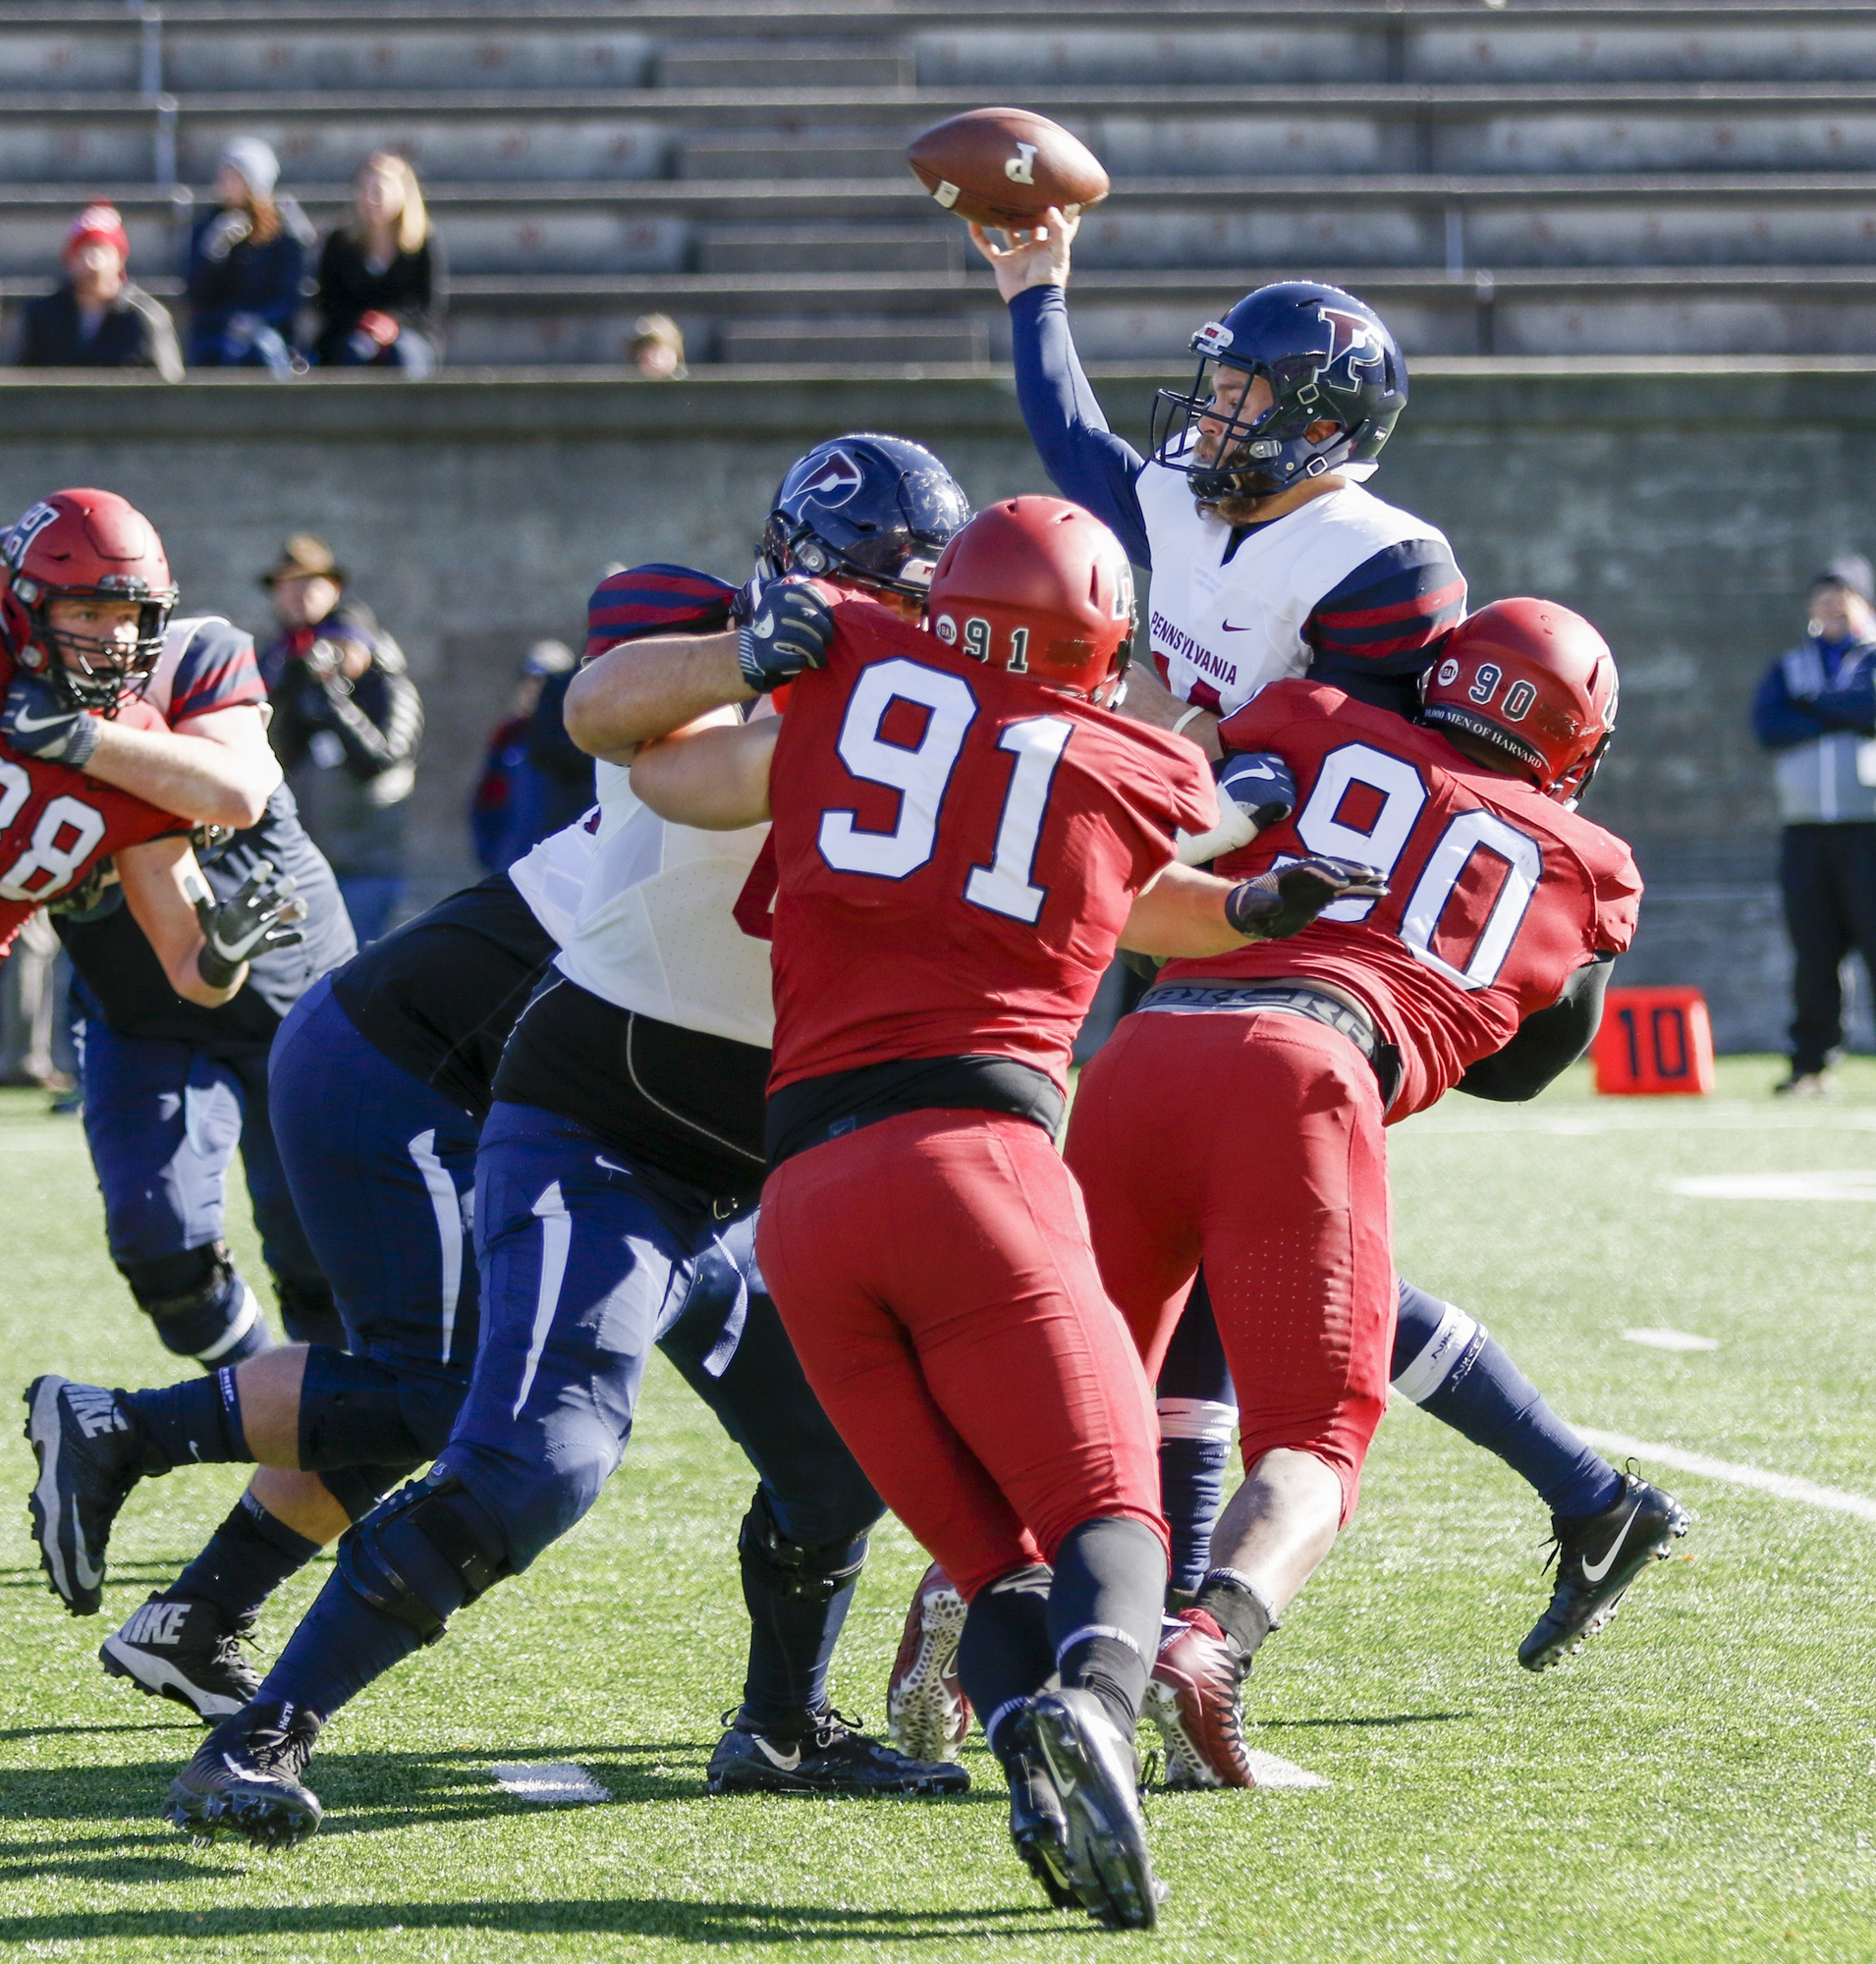 Harvard senor defensive tackle Stone Hart delivers a blow on Penn senior quarterback Will Fischer-Colbrie. The Penn signal-caller completed 13 of 25 passes for 130 yards and a score against the Crimson.